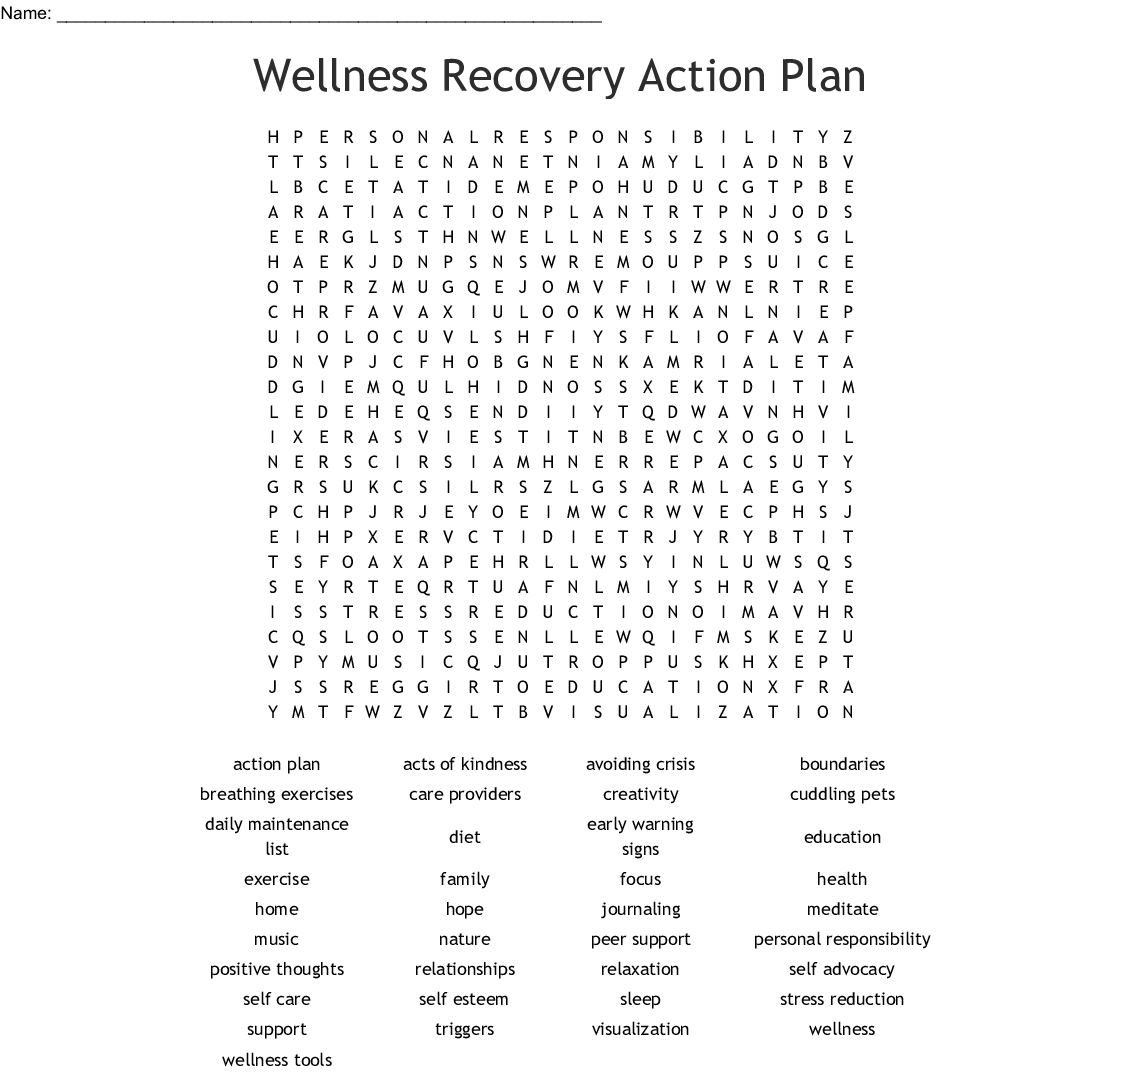 Wellness Recovery Action Plan Word Search